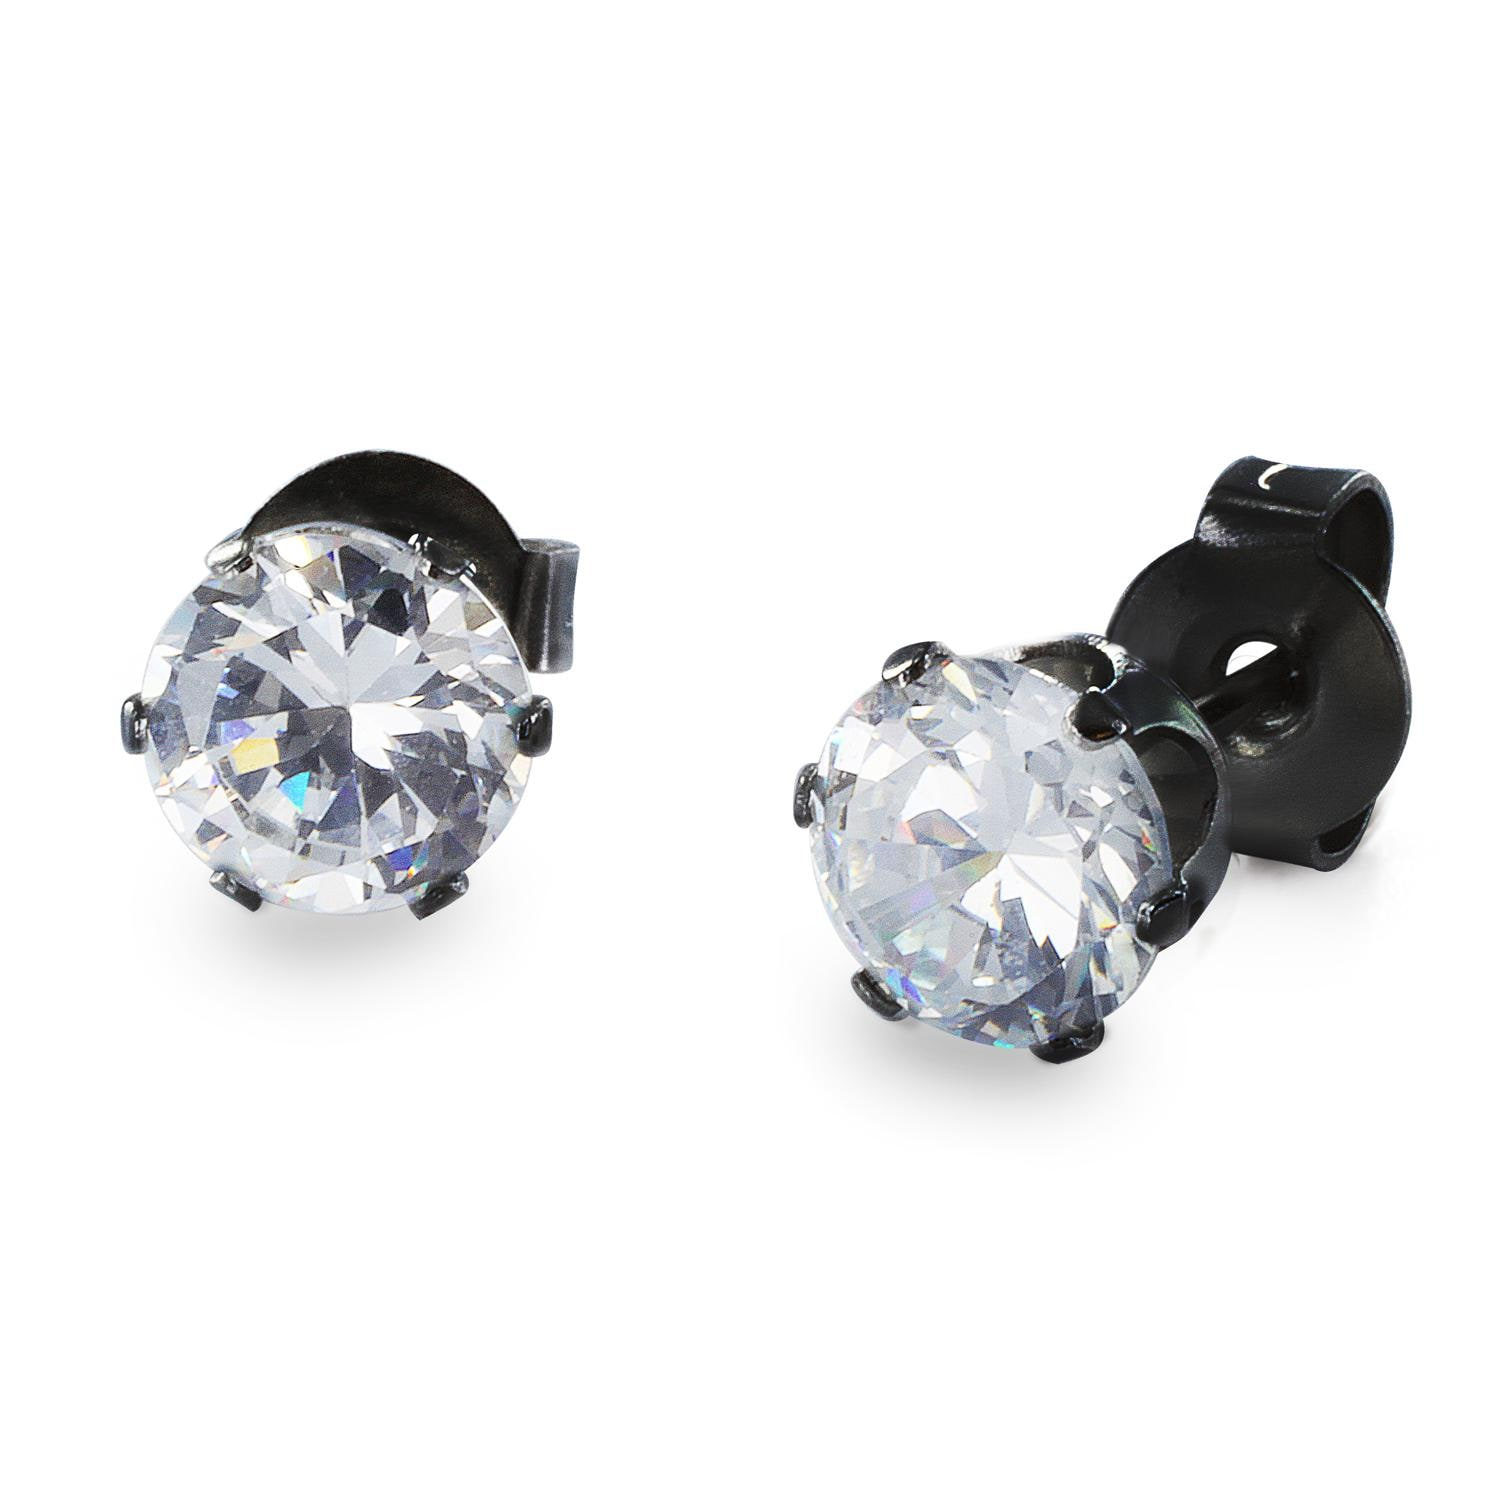 Black Plated Stainless Steel Stud Earrings with Round Clear CZ - 3 mm